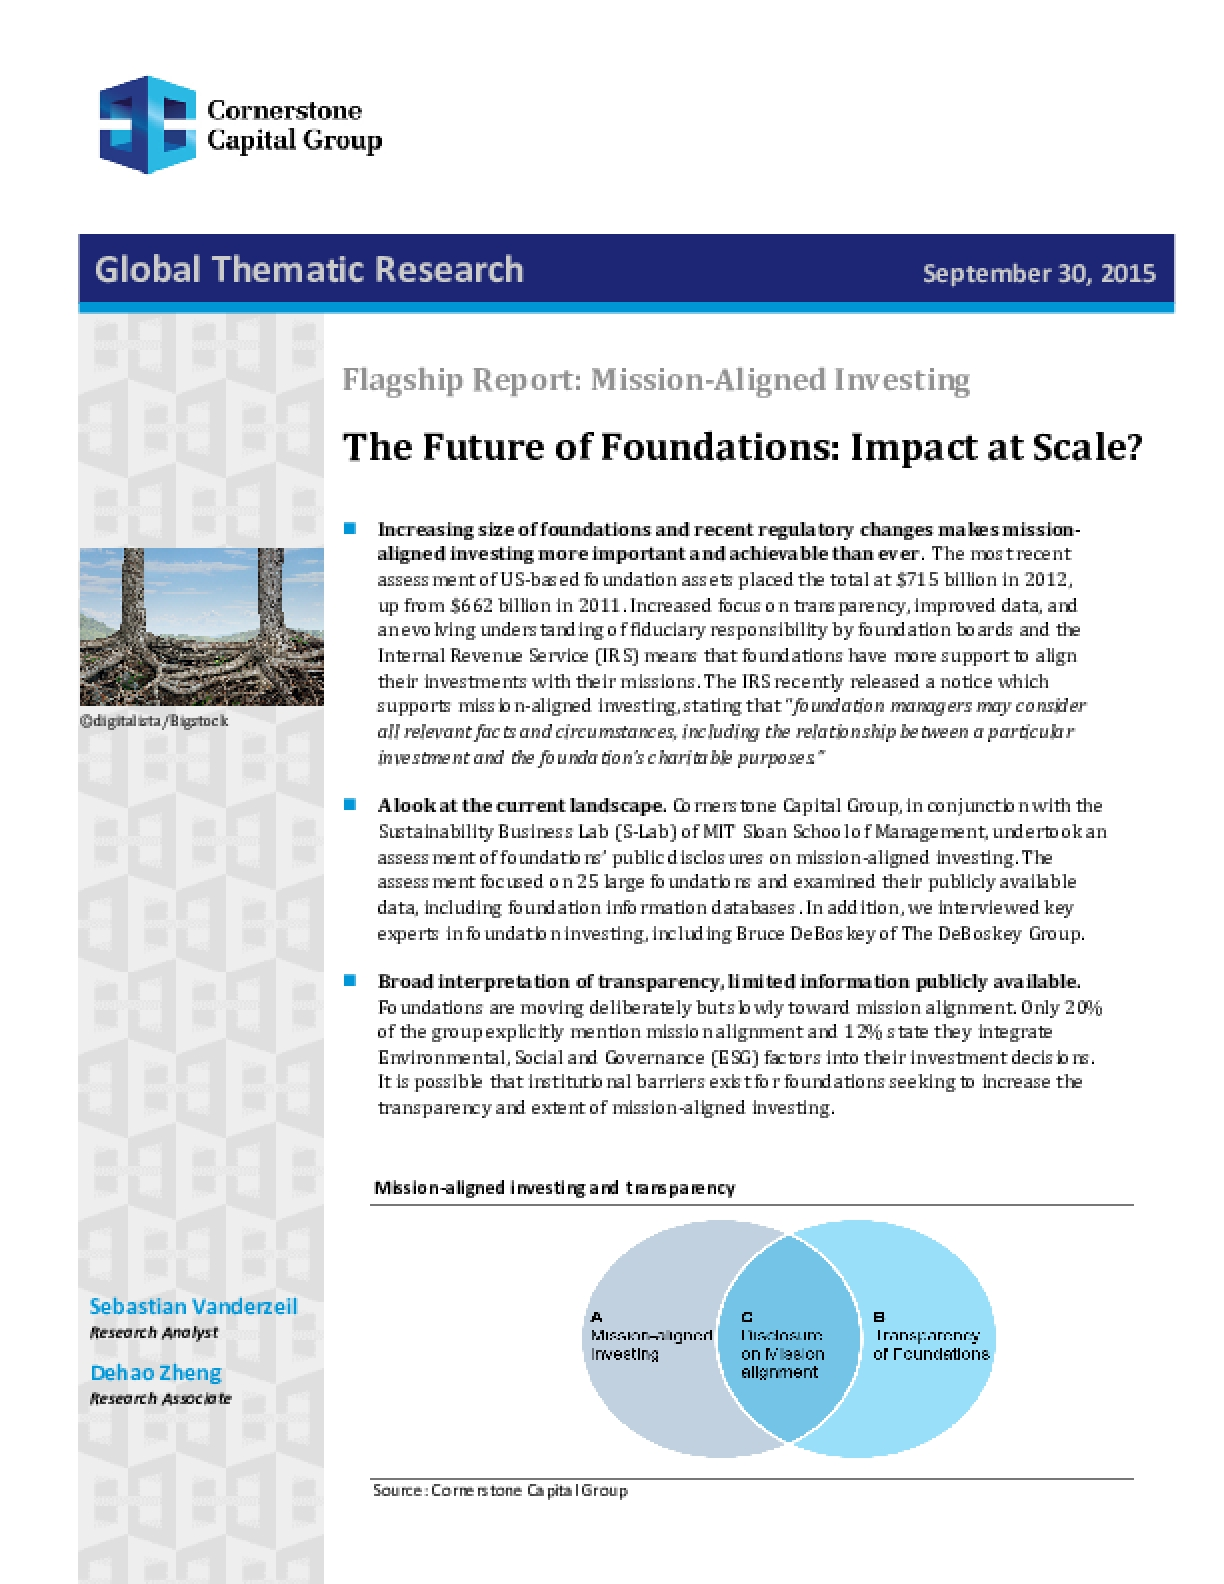 Flagship Report: Mission-Aligned Investing - The Future of Foundations: Impact at Scale?